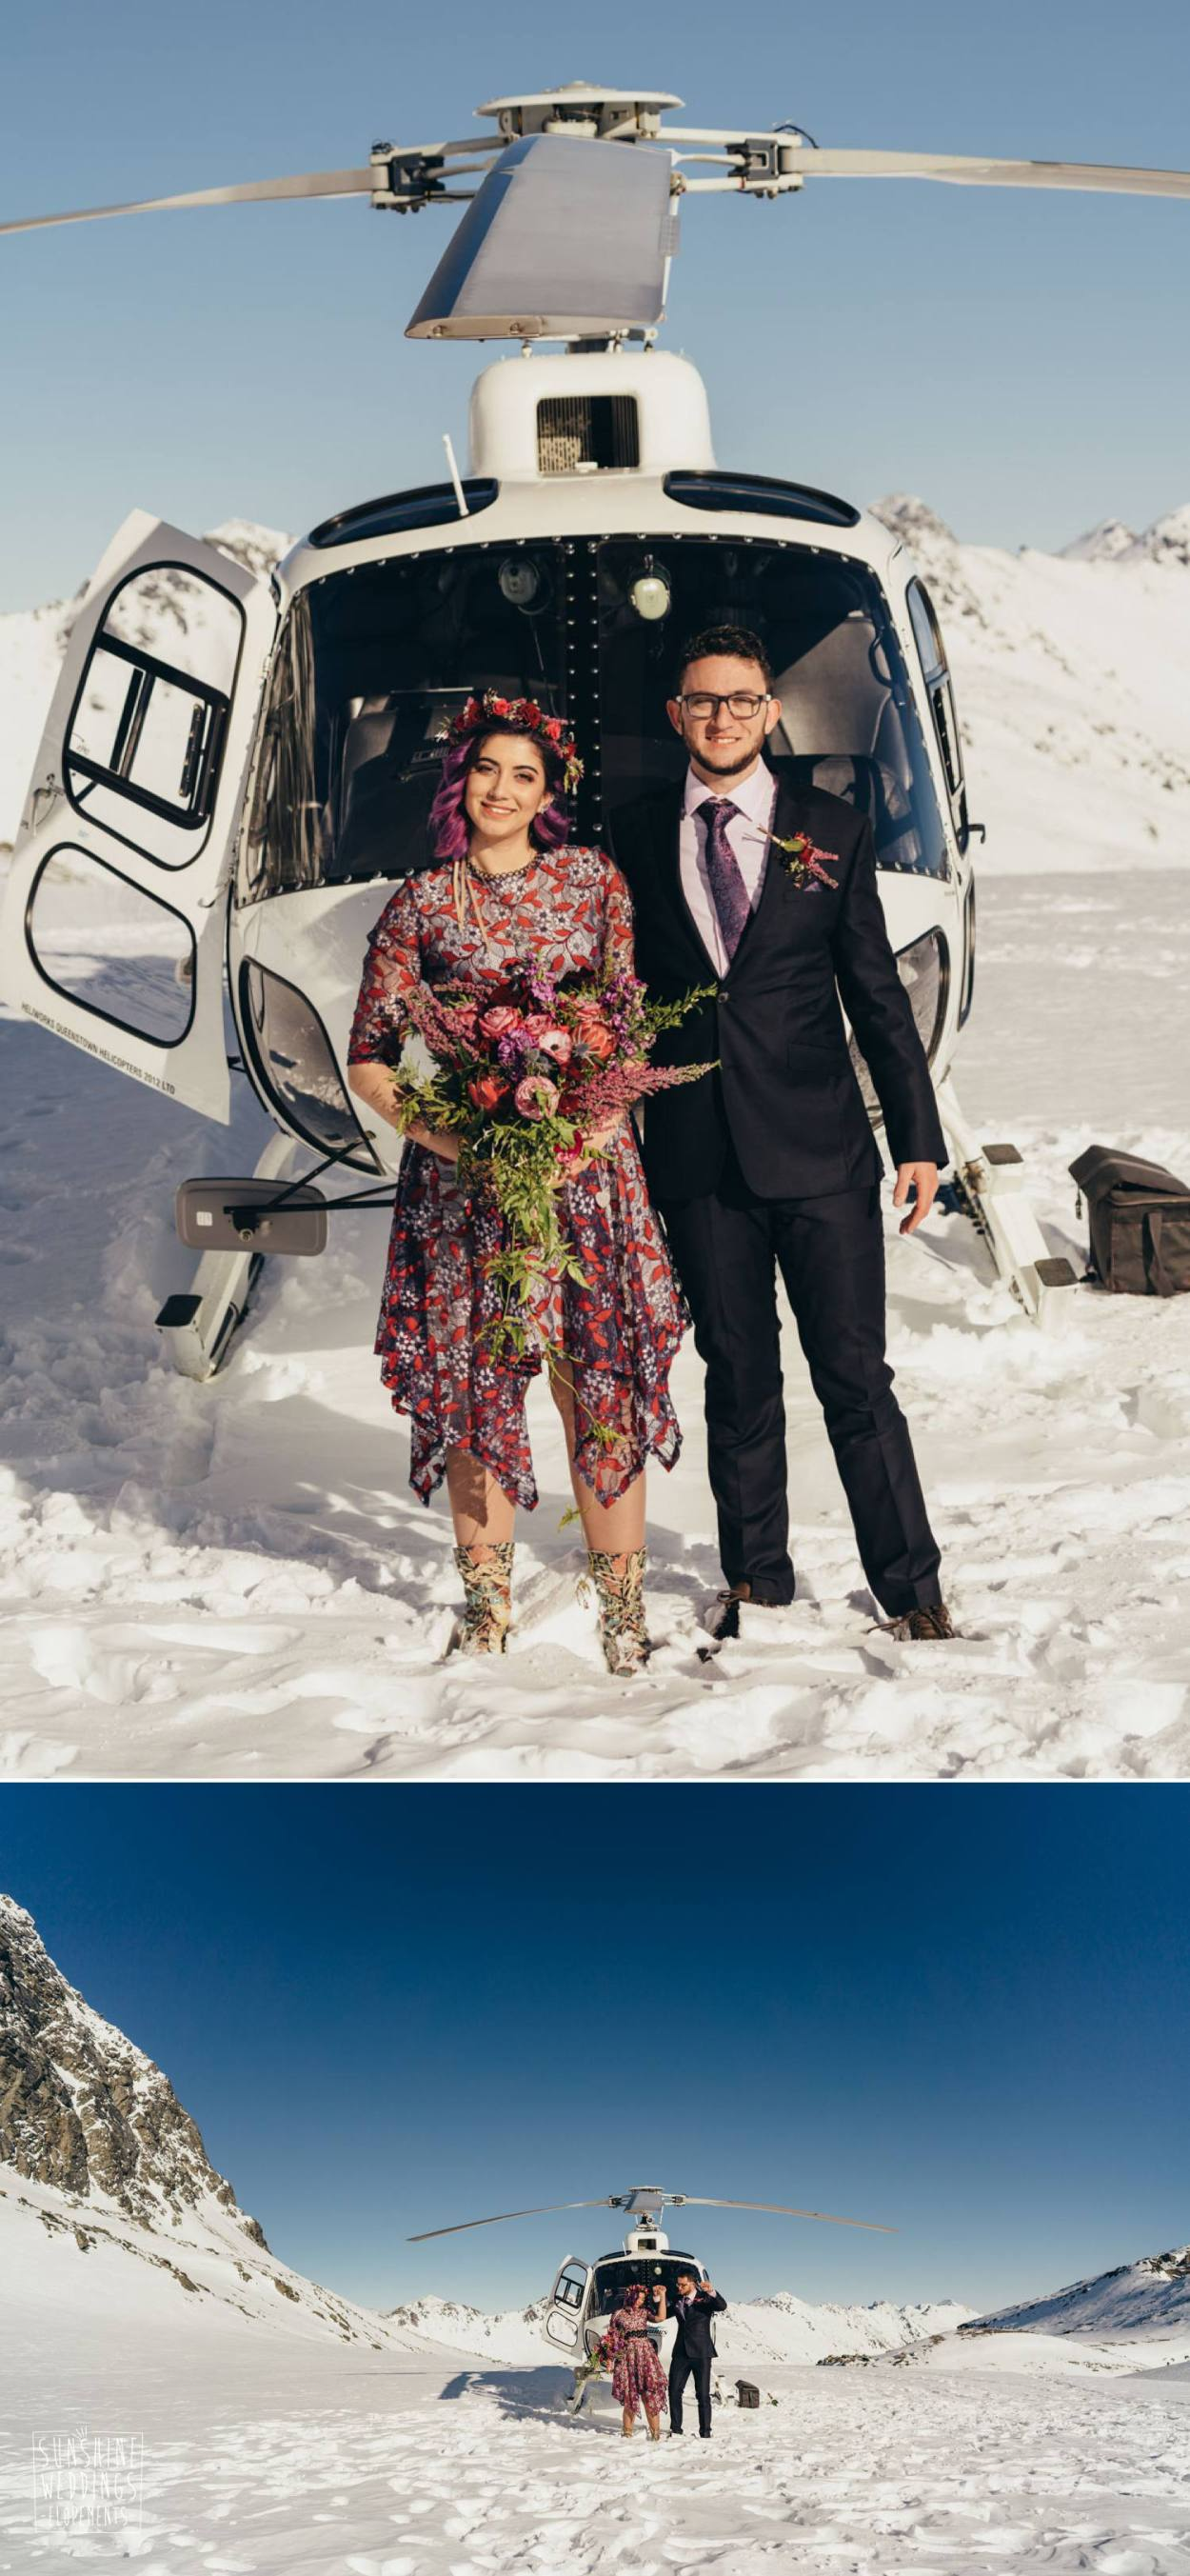 Helicopter wedding packages